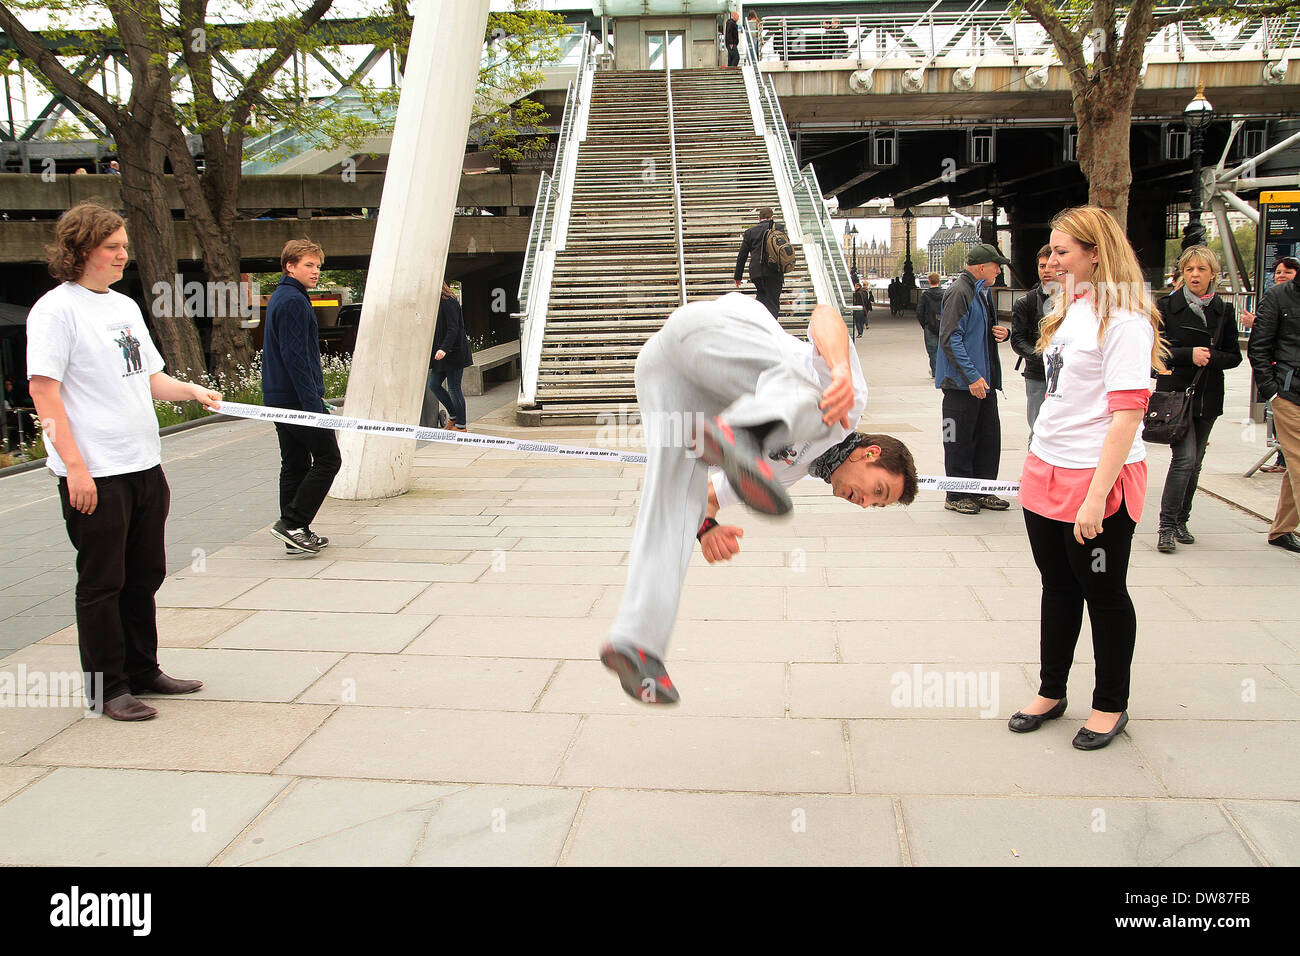 Stunt man Chase Armitage in London - Stock Image